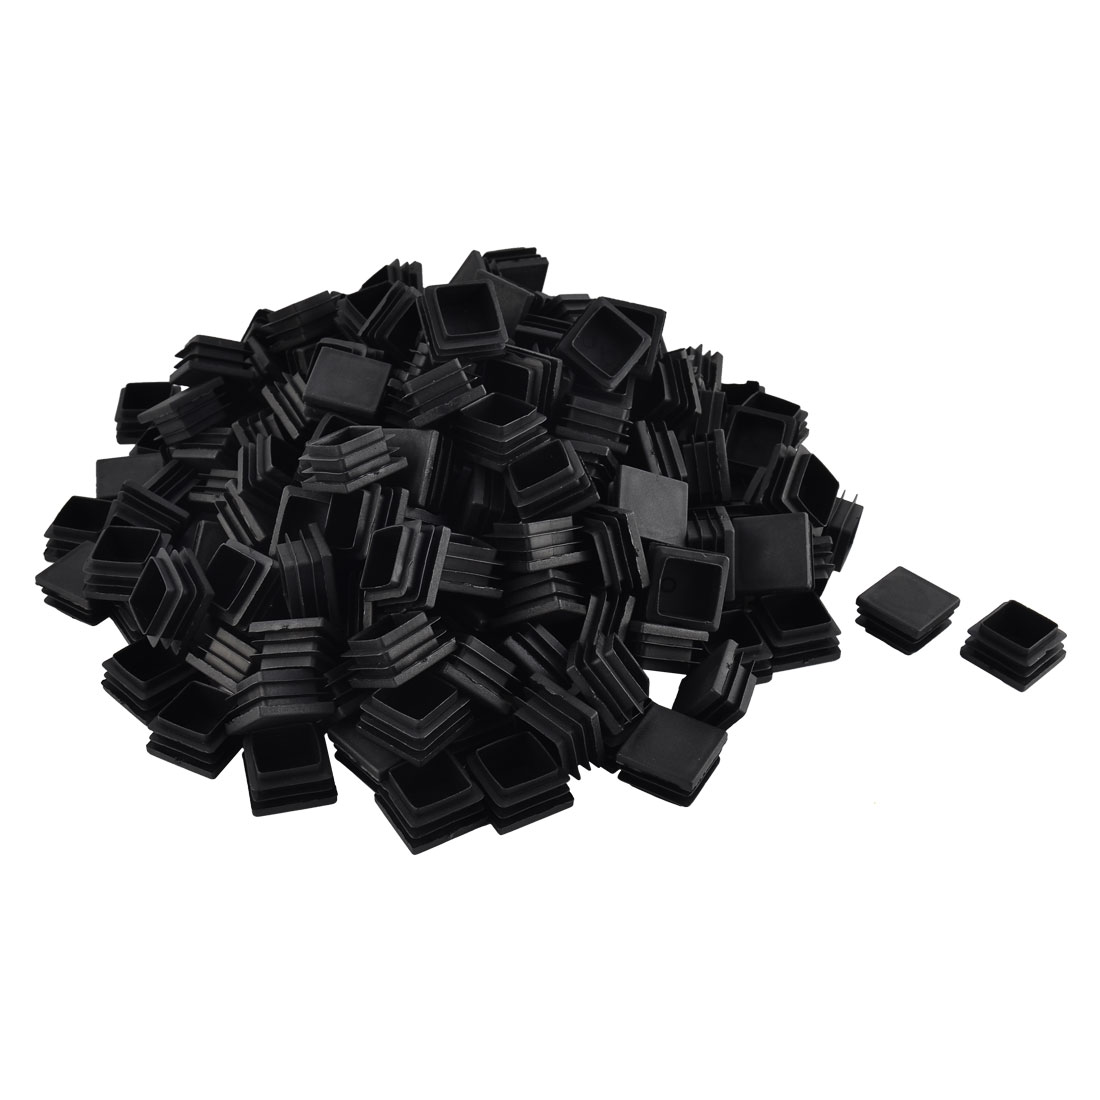 Furniture Table Chair Legs Plastic Square Tube Pipe Insert Cap Cover Black 32 x 32mm 200pcs